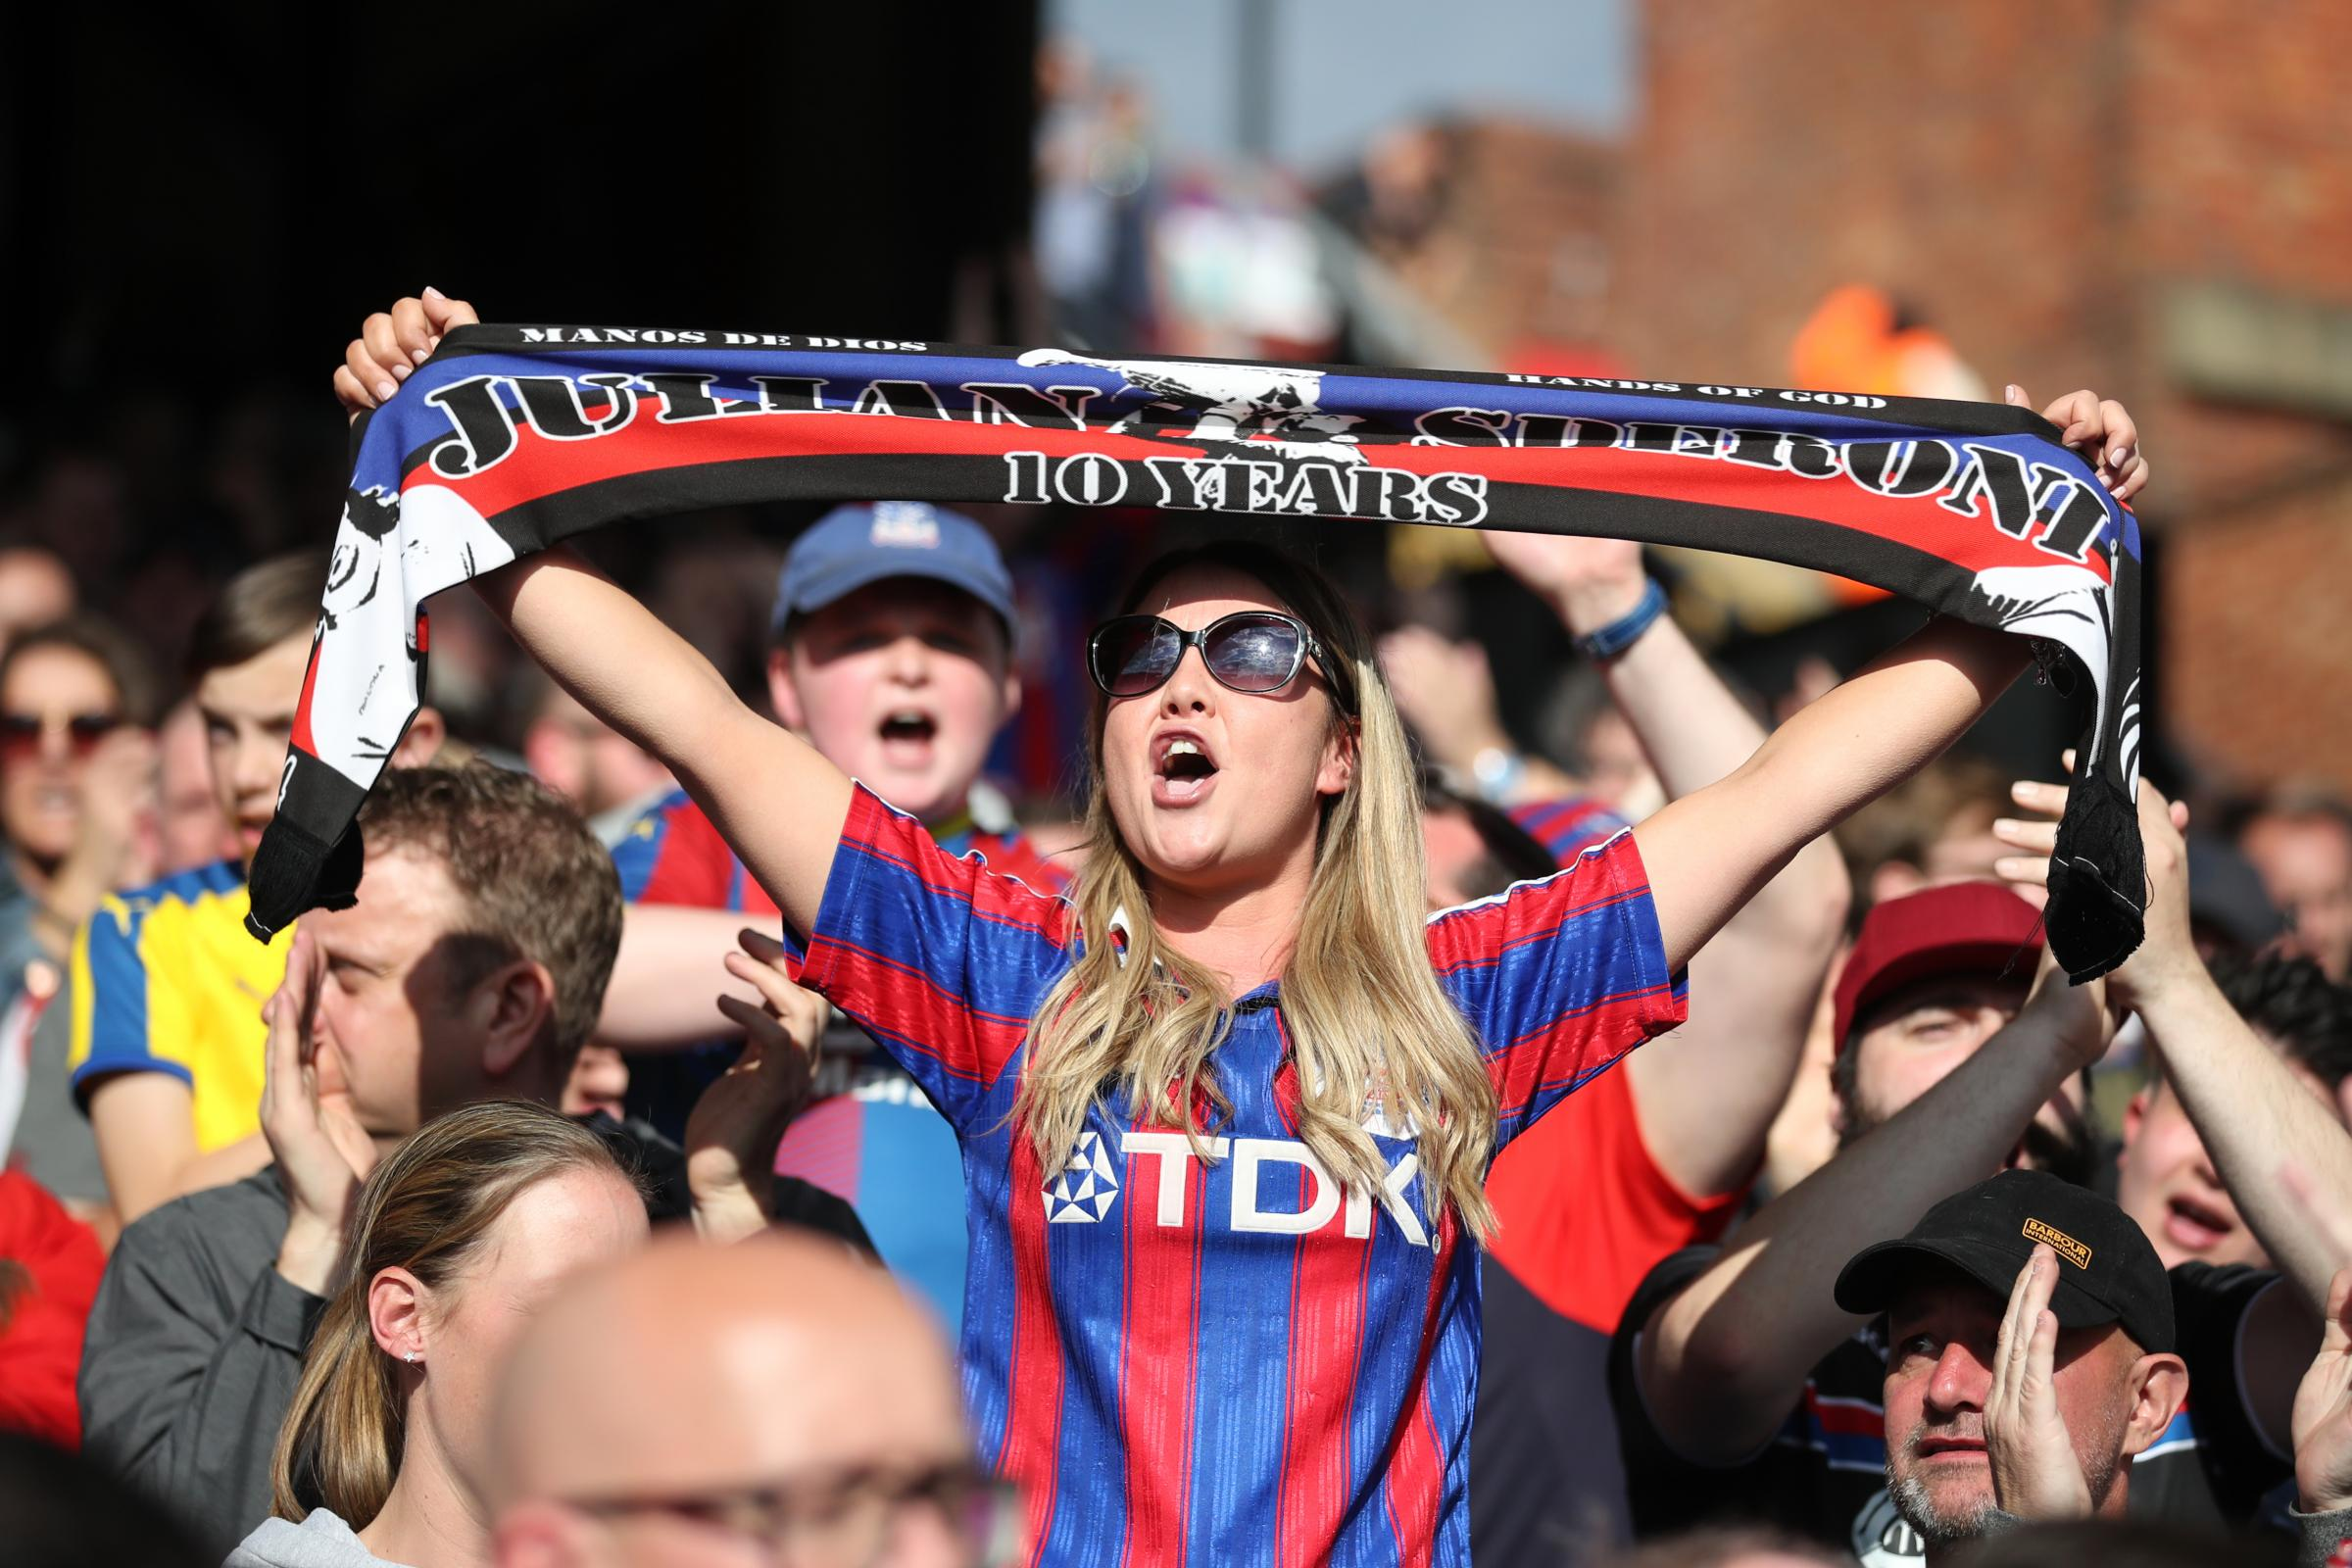 Five Things We Learned from Palace's 5-3 win - best atmosphere in the league?